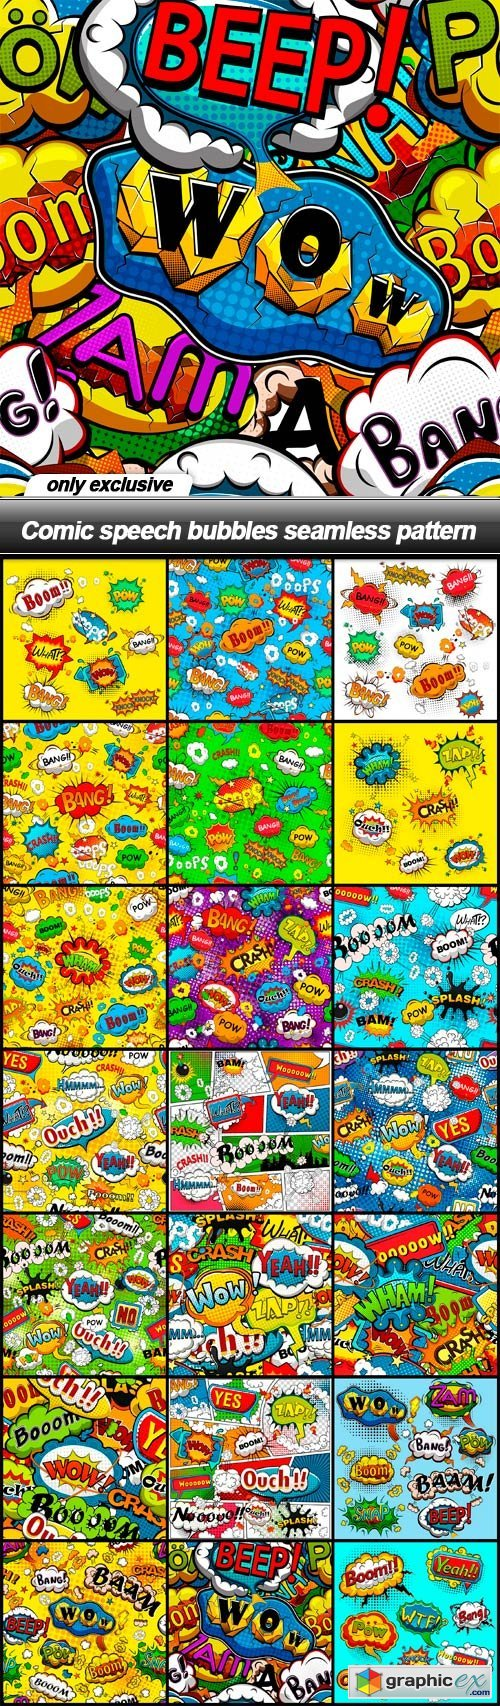 Comic speech bubbles seamless pattern - 21 EPS